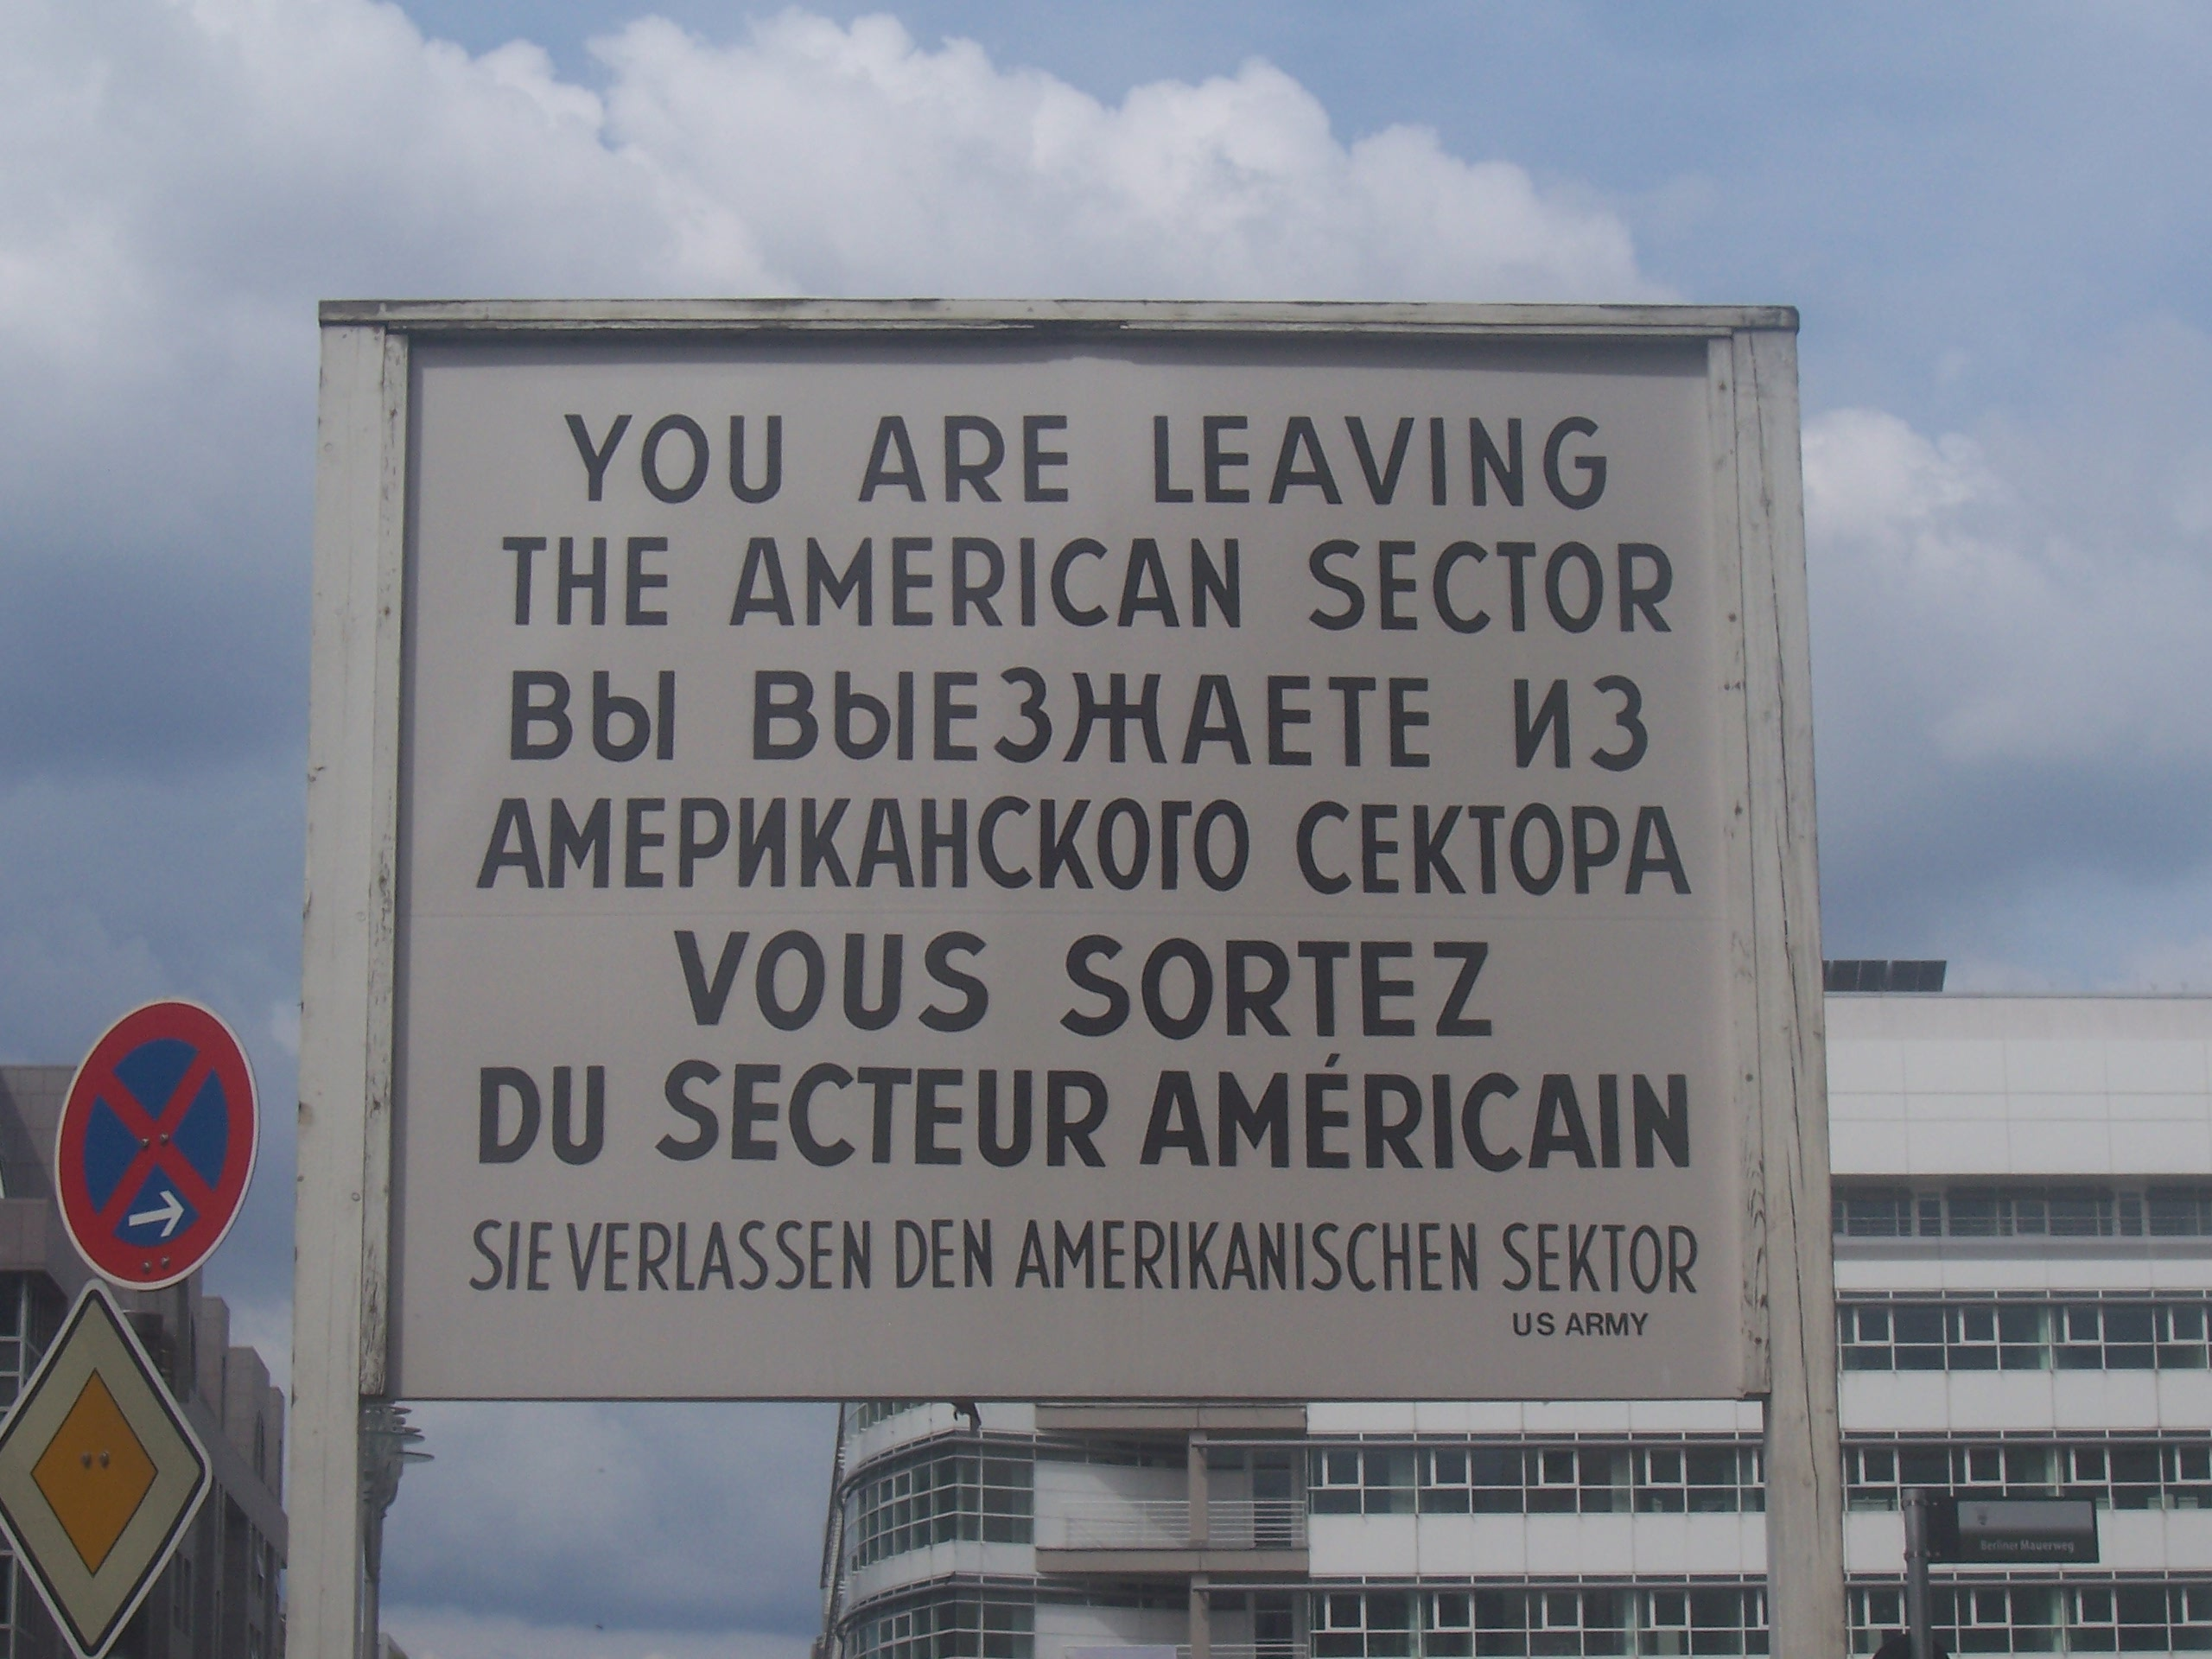 You are leaving the American Sector - https://upload.wikimedia.org/wikipedia/commons/8/83/Checkpoint_Charlie_sign.jpg